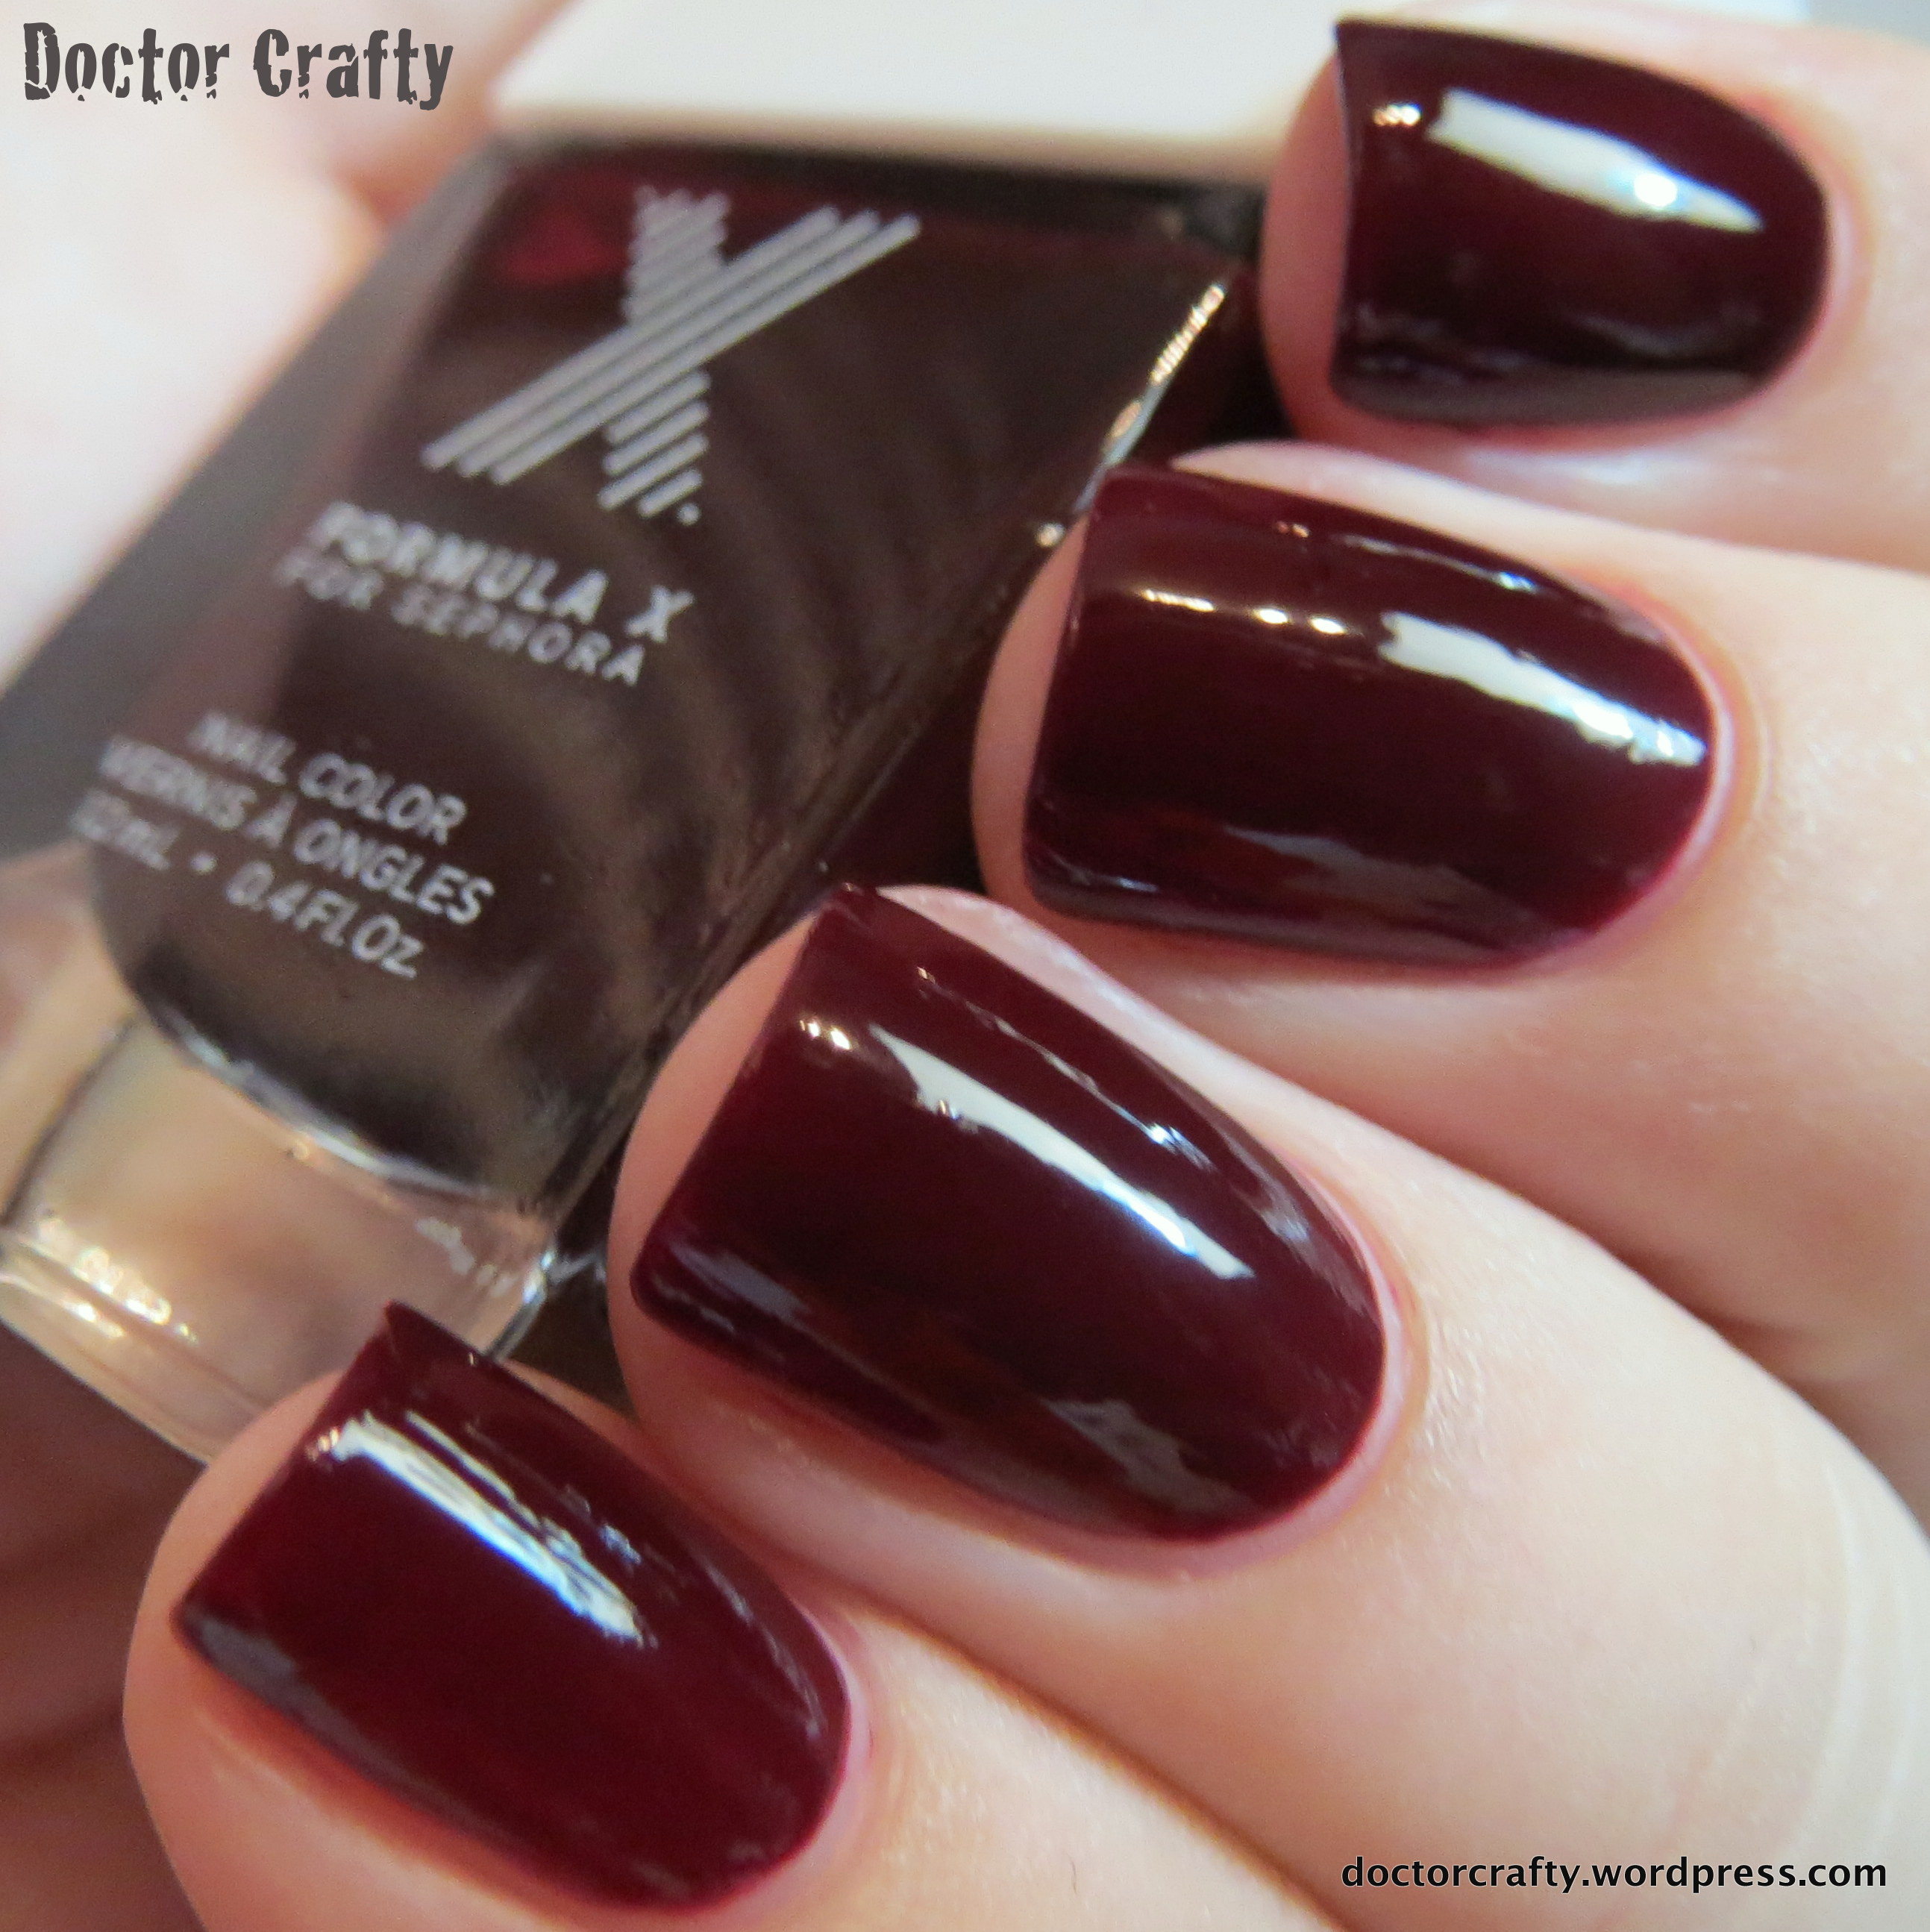 sephora formula x | Doctor Crafty